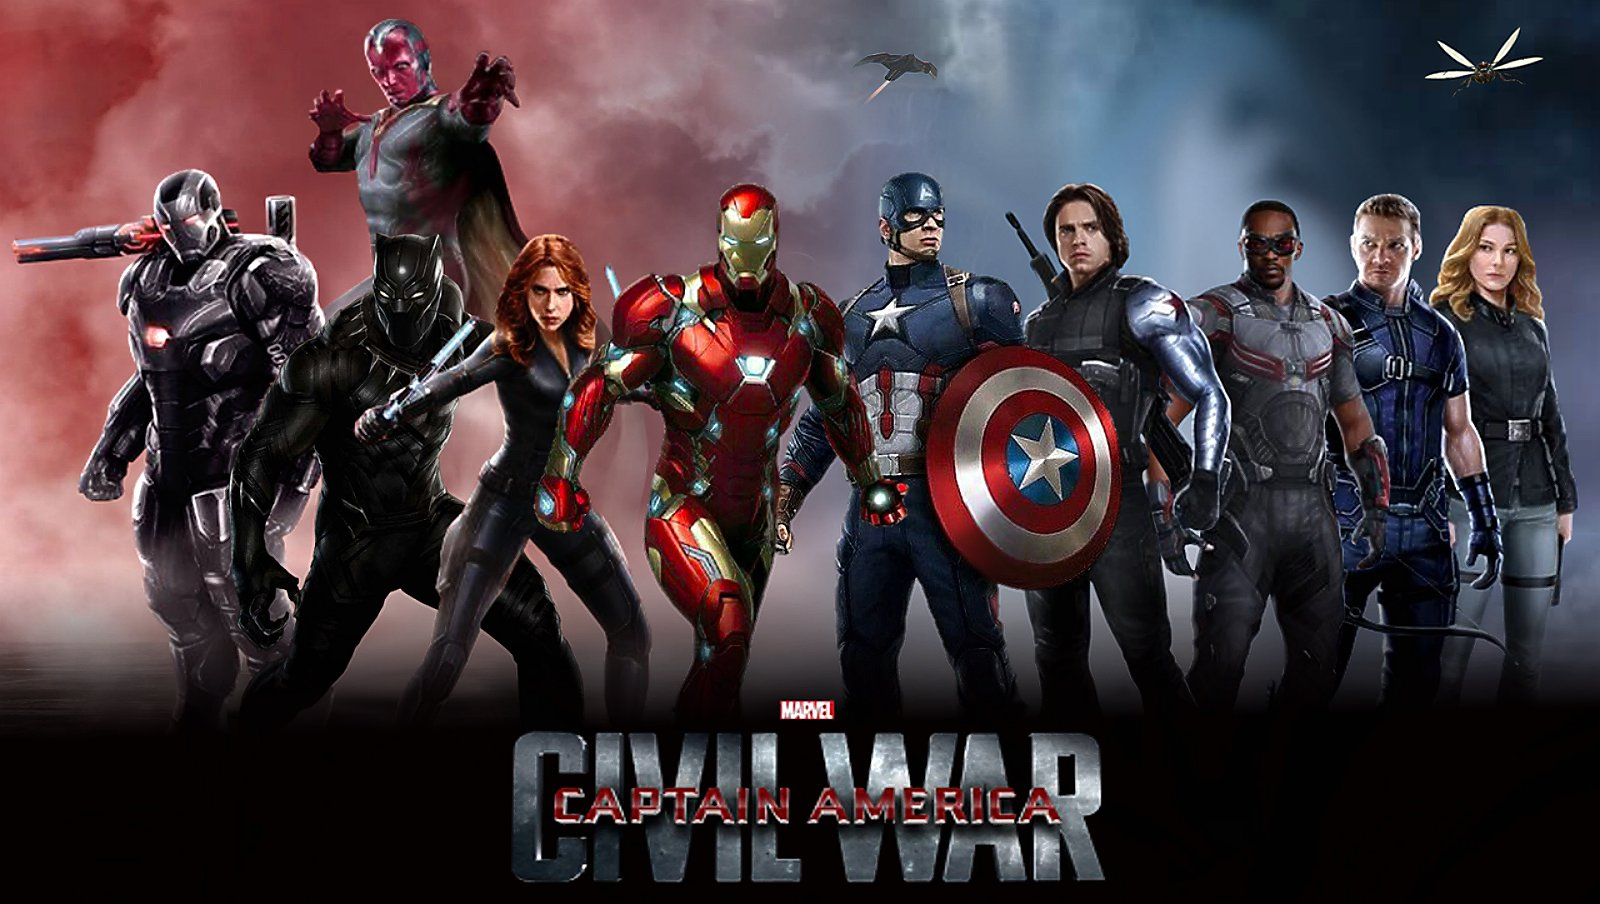 CAPTAIN AMERICA 3 Civil War marvel superhero action fighting 1cacw 1600x904